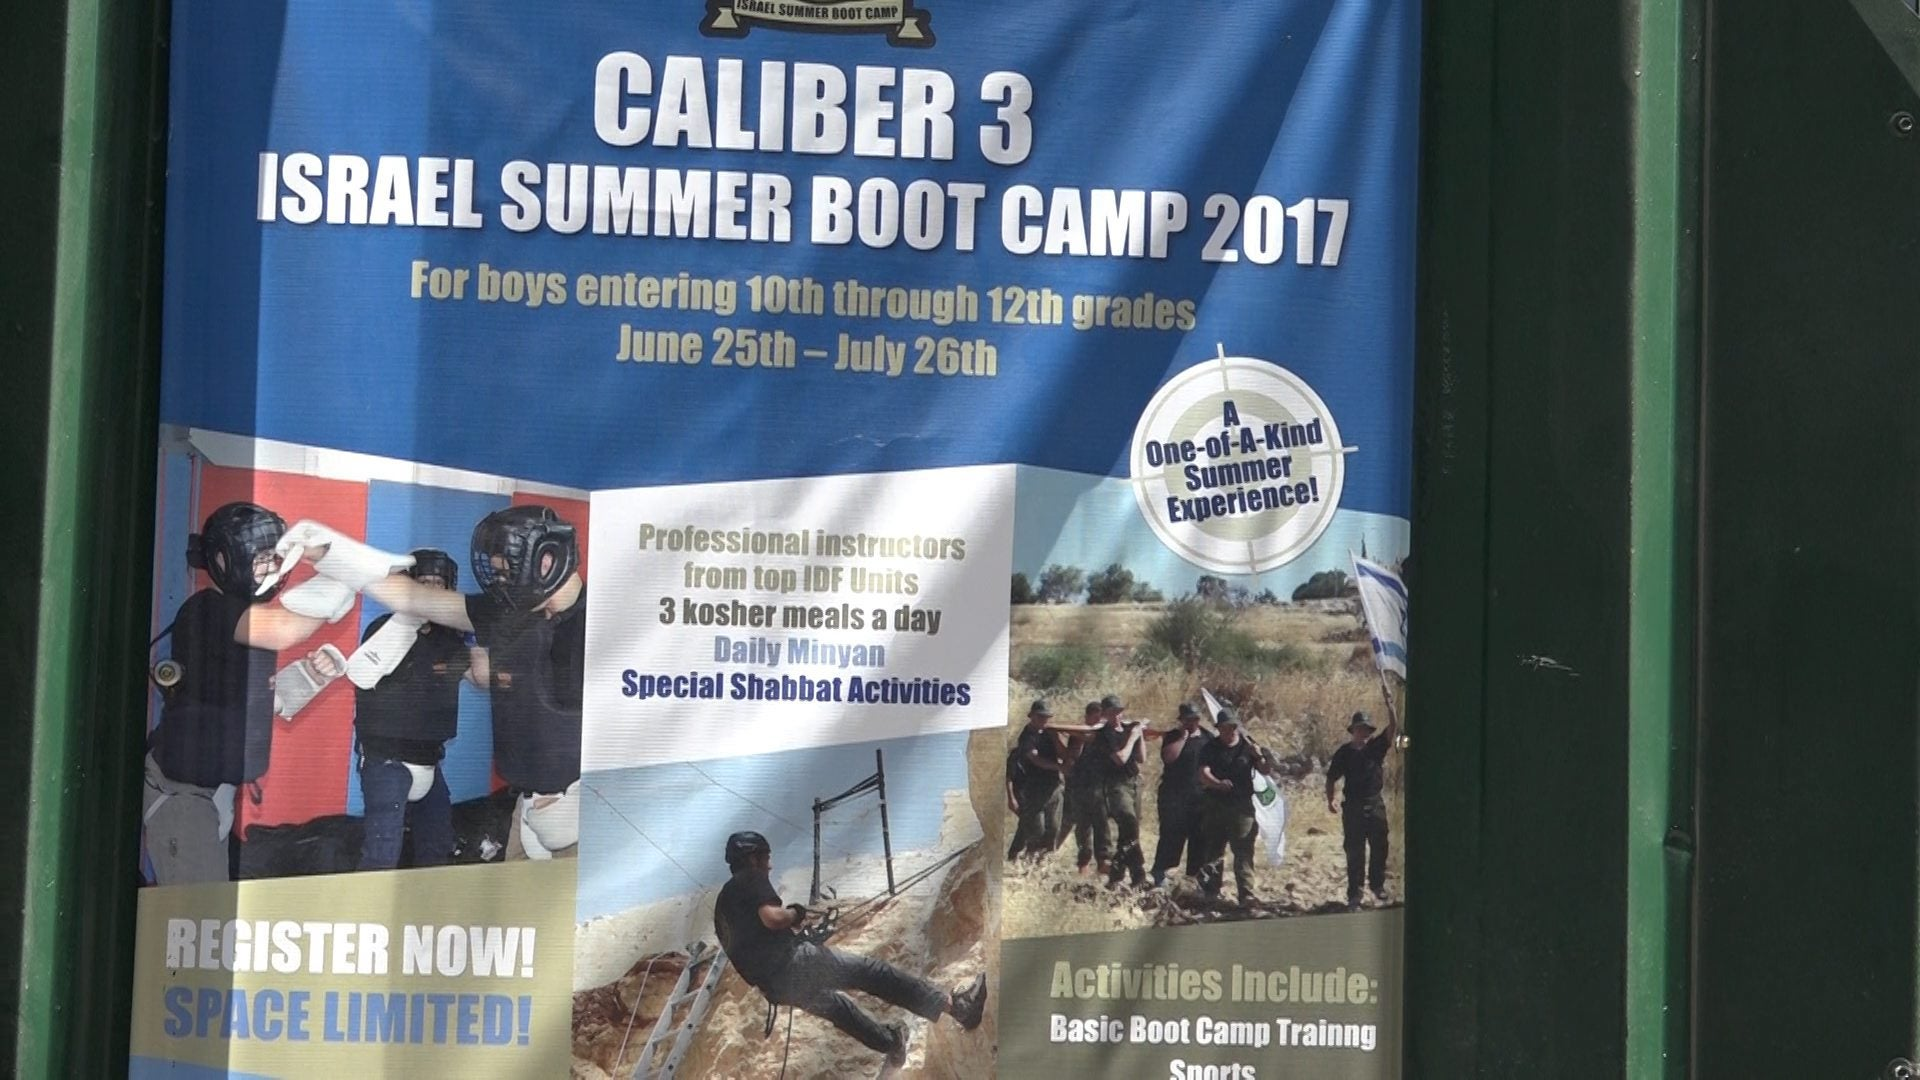 A poster for the Caliber 3 counterterrorism and security training academy, July 2017.